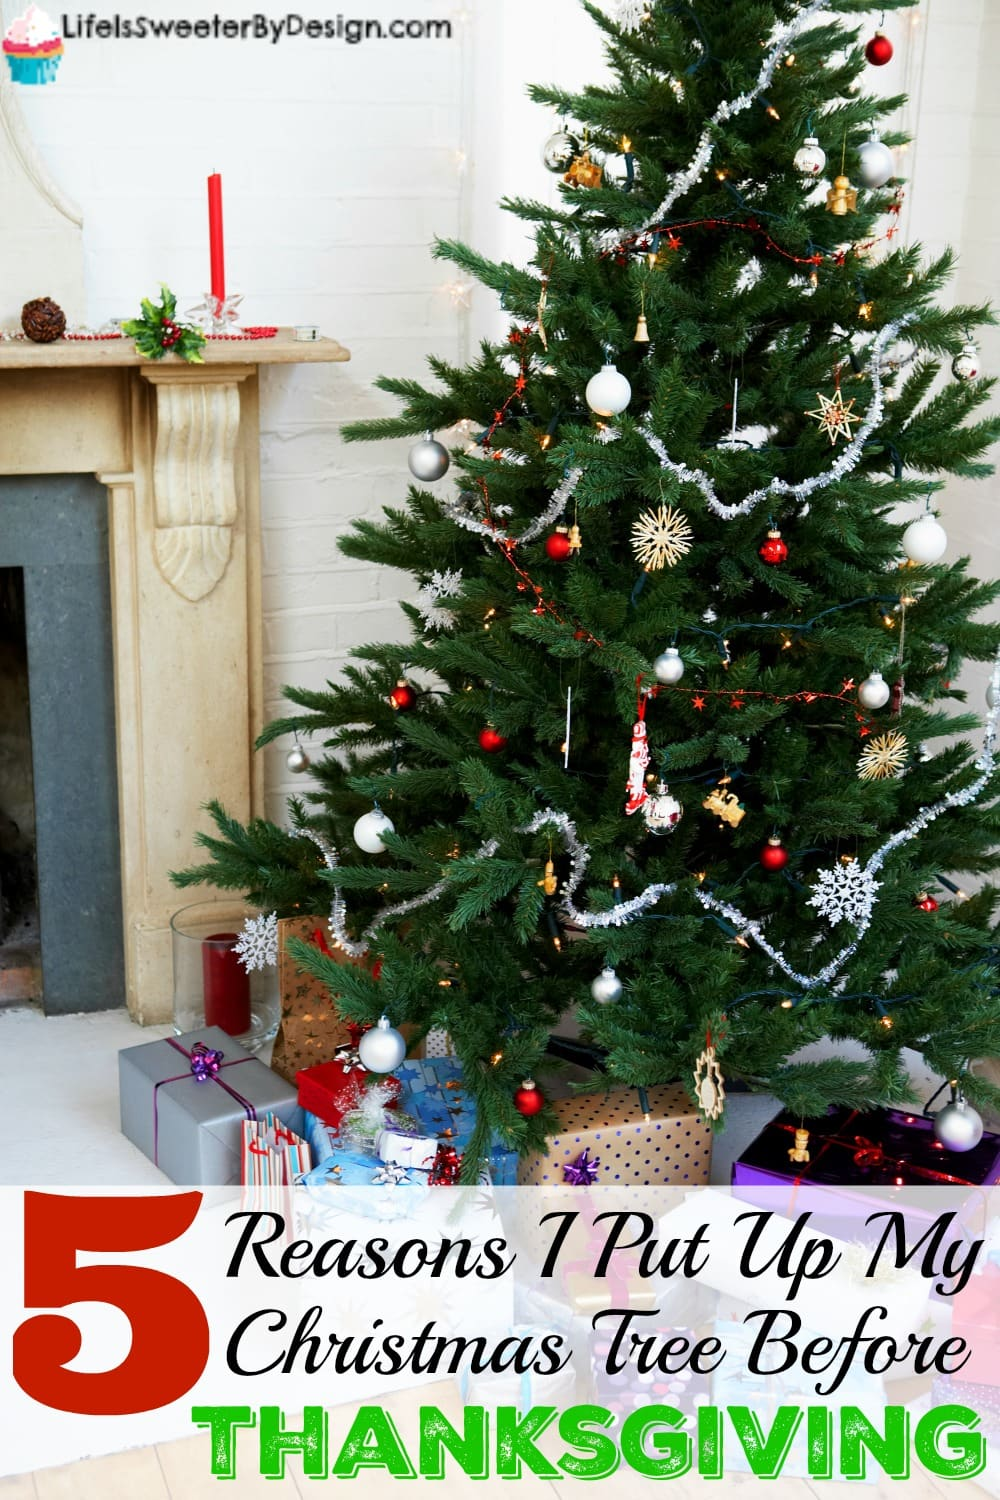 5 reasons i put up my christmas tree before thanksgiving life is sweeter by design - When To Put Up Christmas Decorations